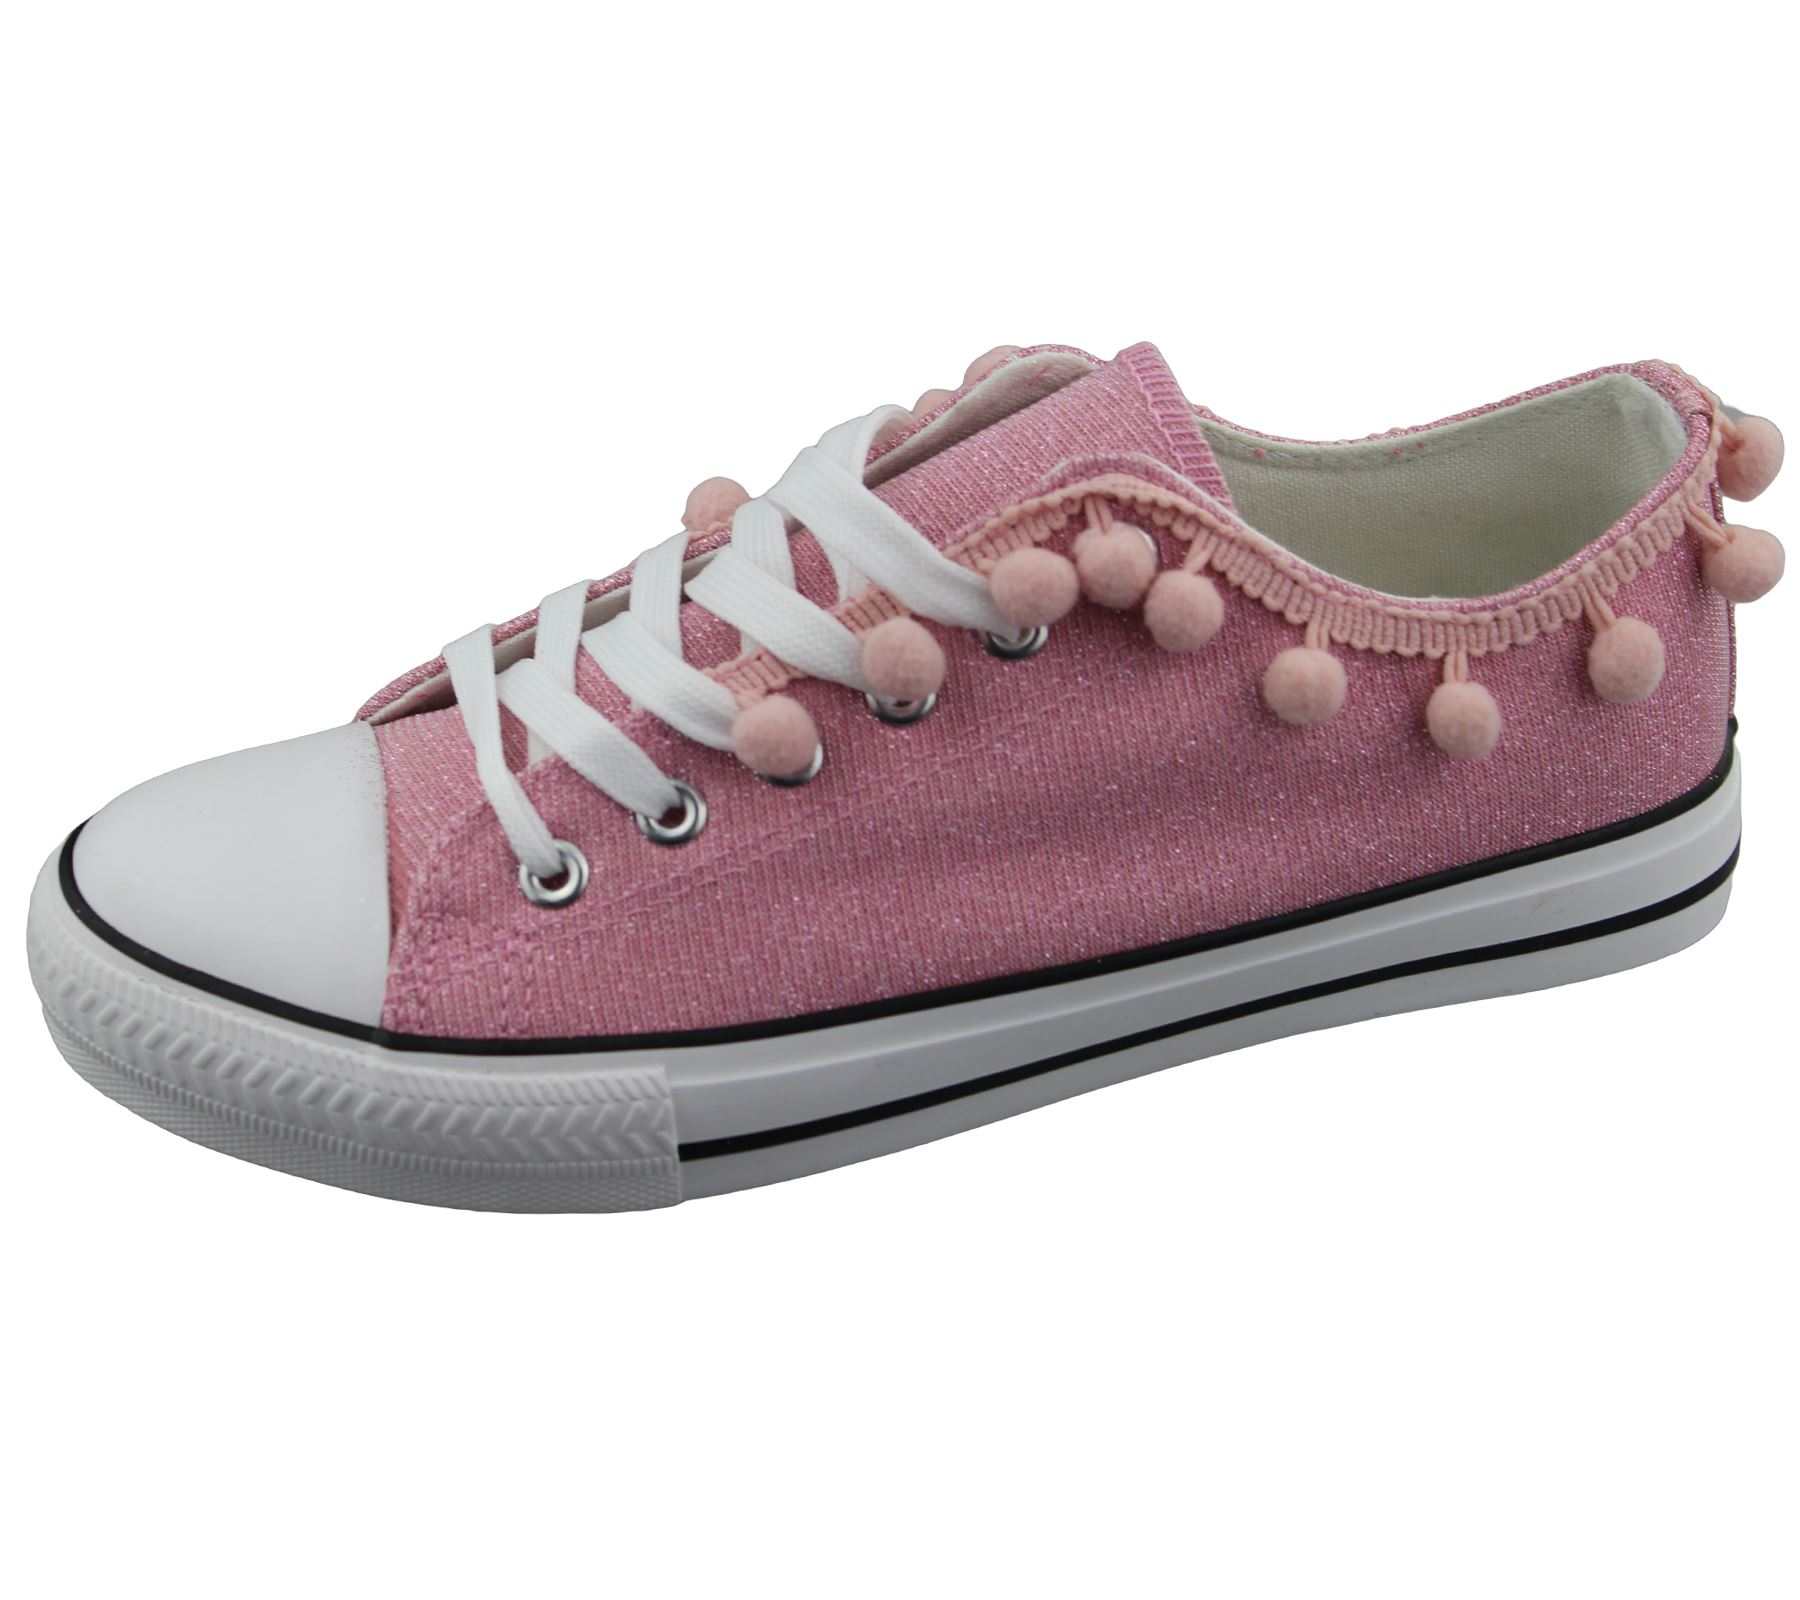 Womens-Sneakers-Flat-Pumps-Ladies-Glittered-Summer-Plimsole-Canvas-Shoes thumbnail 38